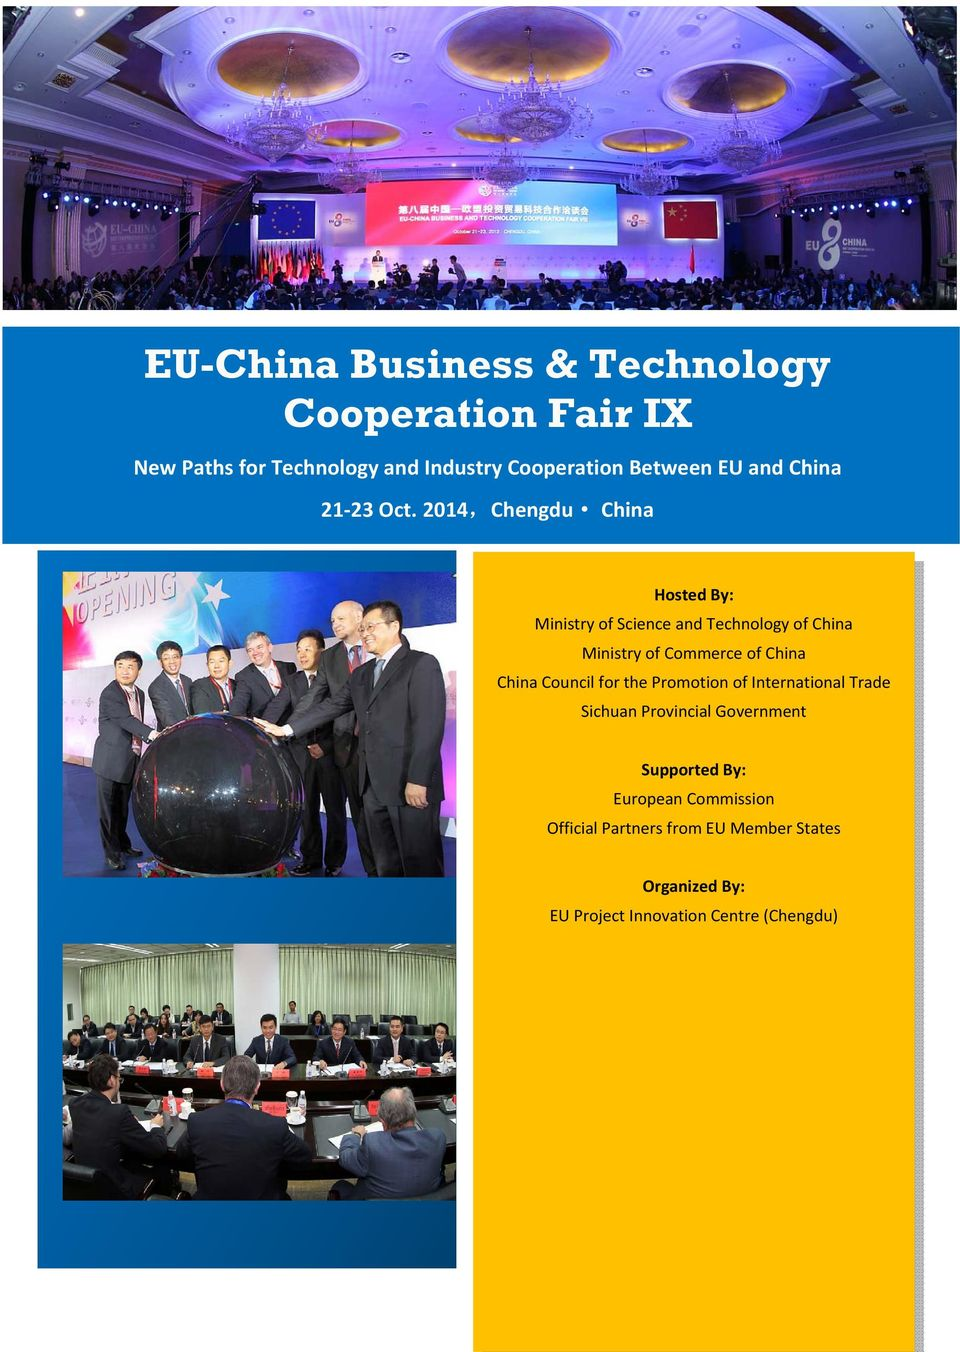 2014,Chengdu China Hosted By: Ministry of Science and Technology of China Ministry of Commerce of China China